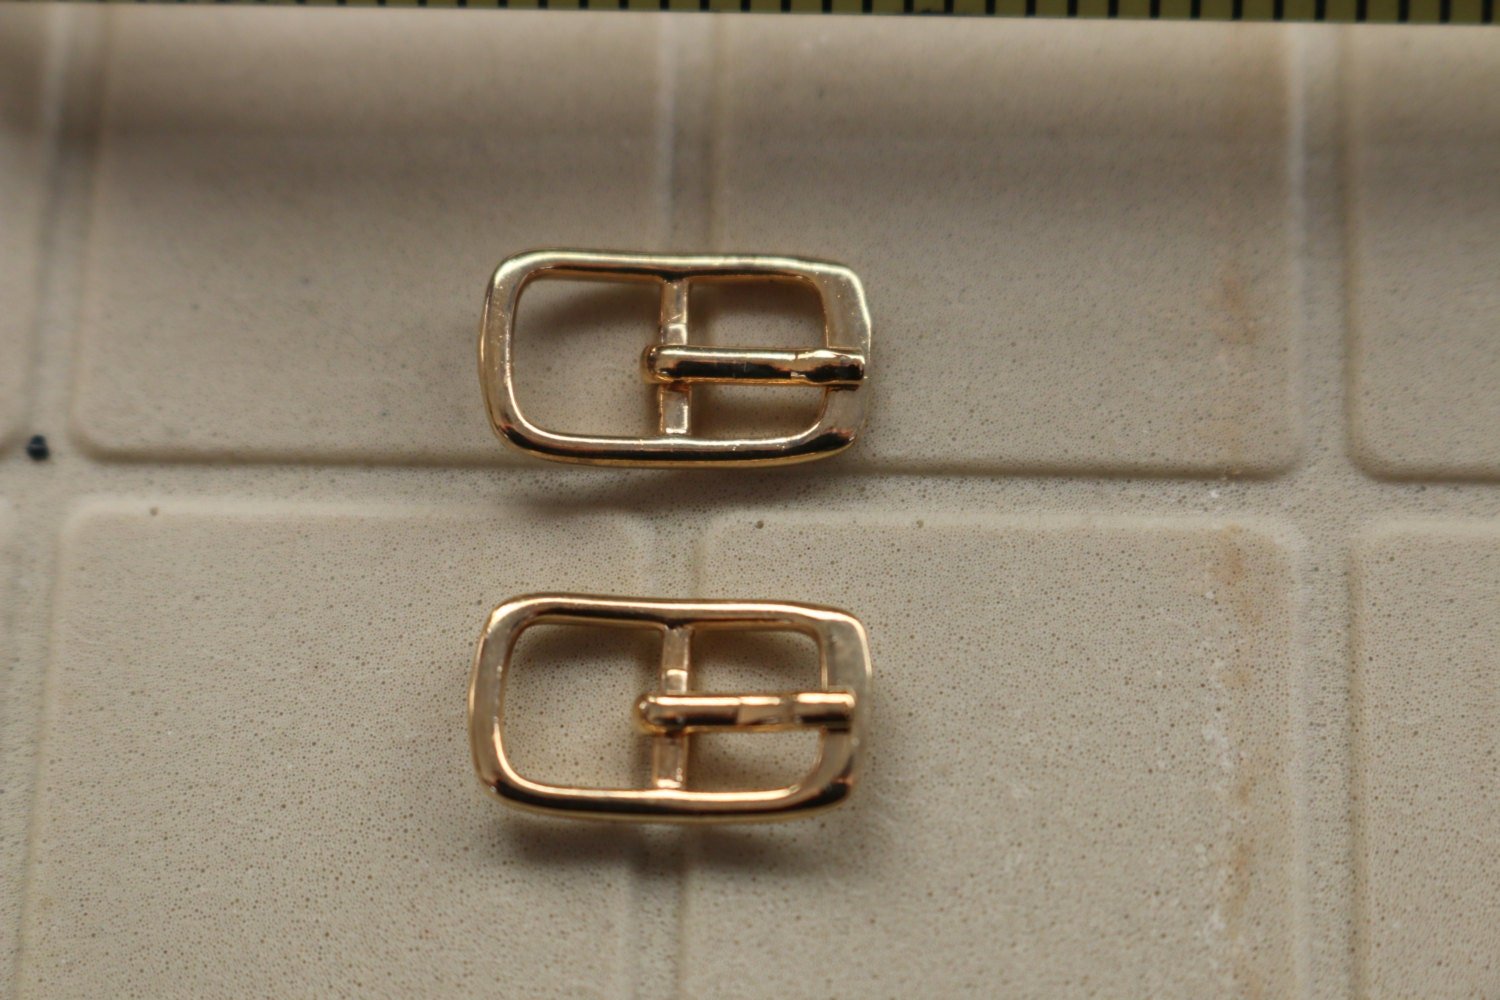 Small buckles for crafts - Sold By Rarefindsandtreasure